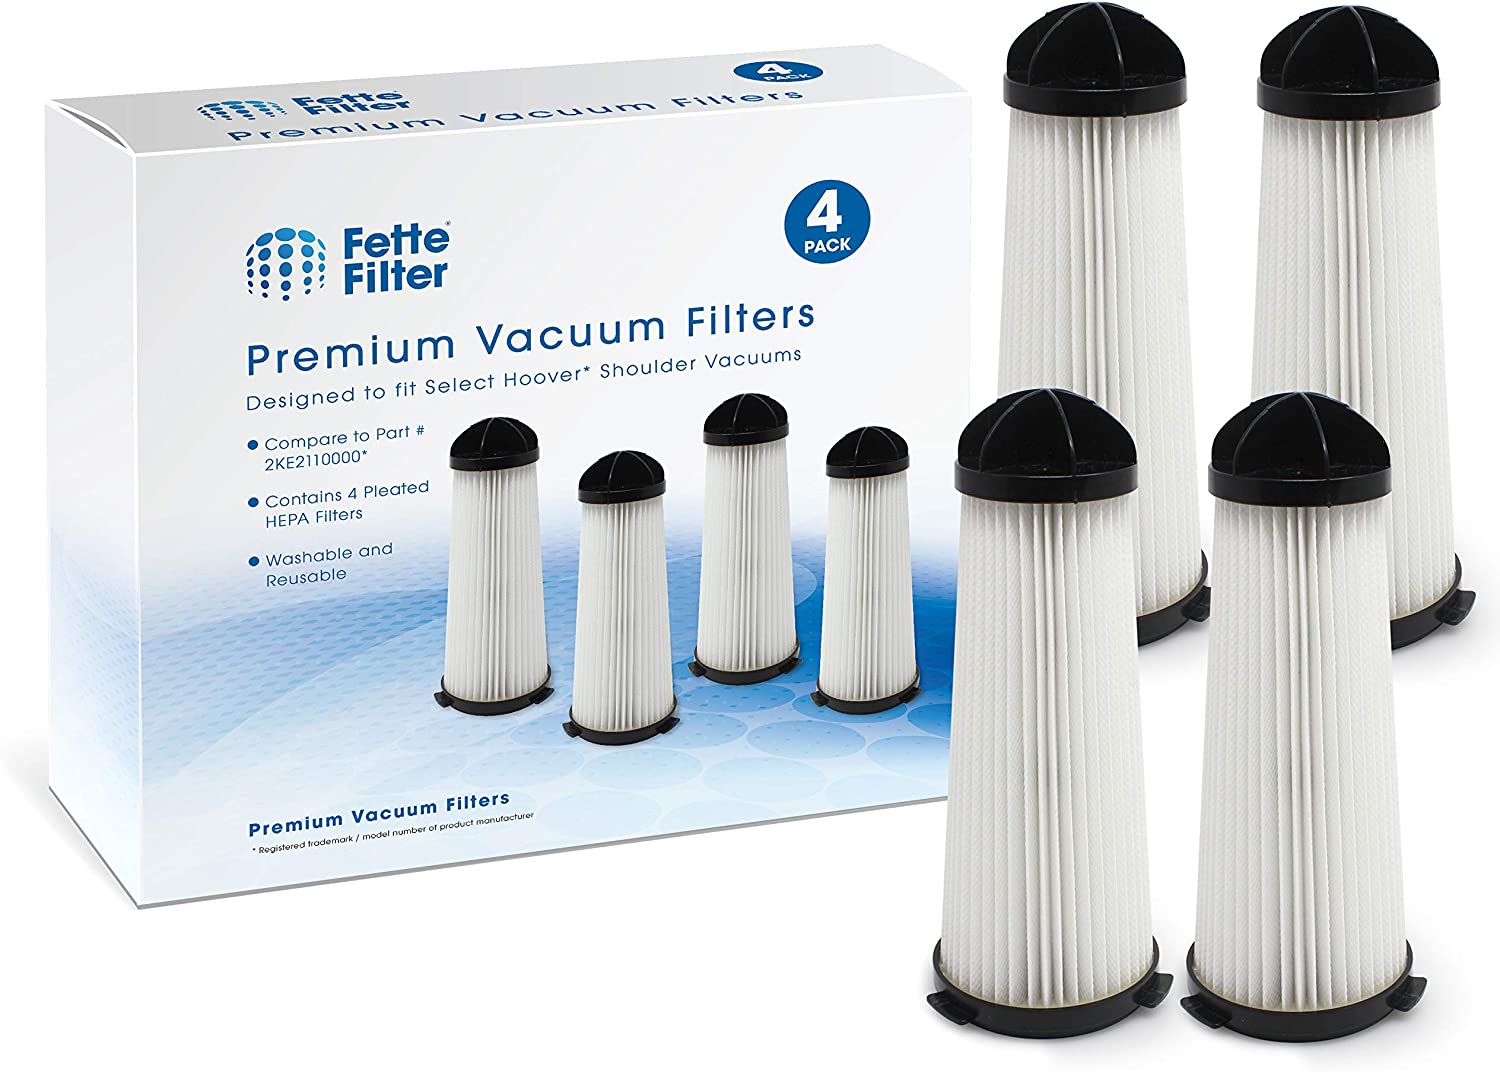 Fette Filter - Vacuum Filter Compatible with Hoover Shoulder Vacuums. Compare to Part # 2KE2110000 (4-Pack)